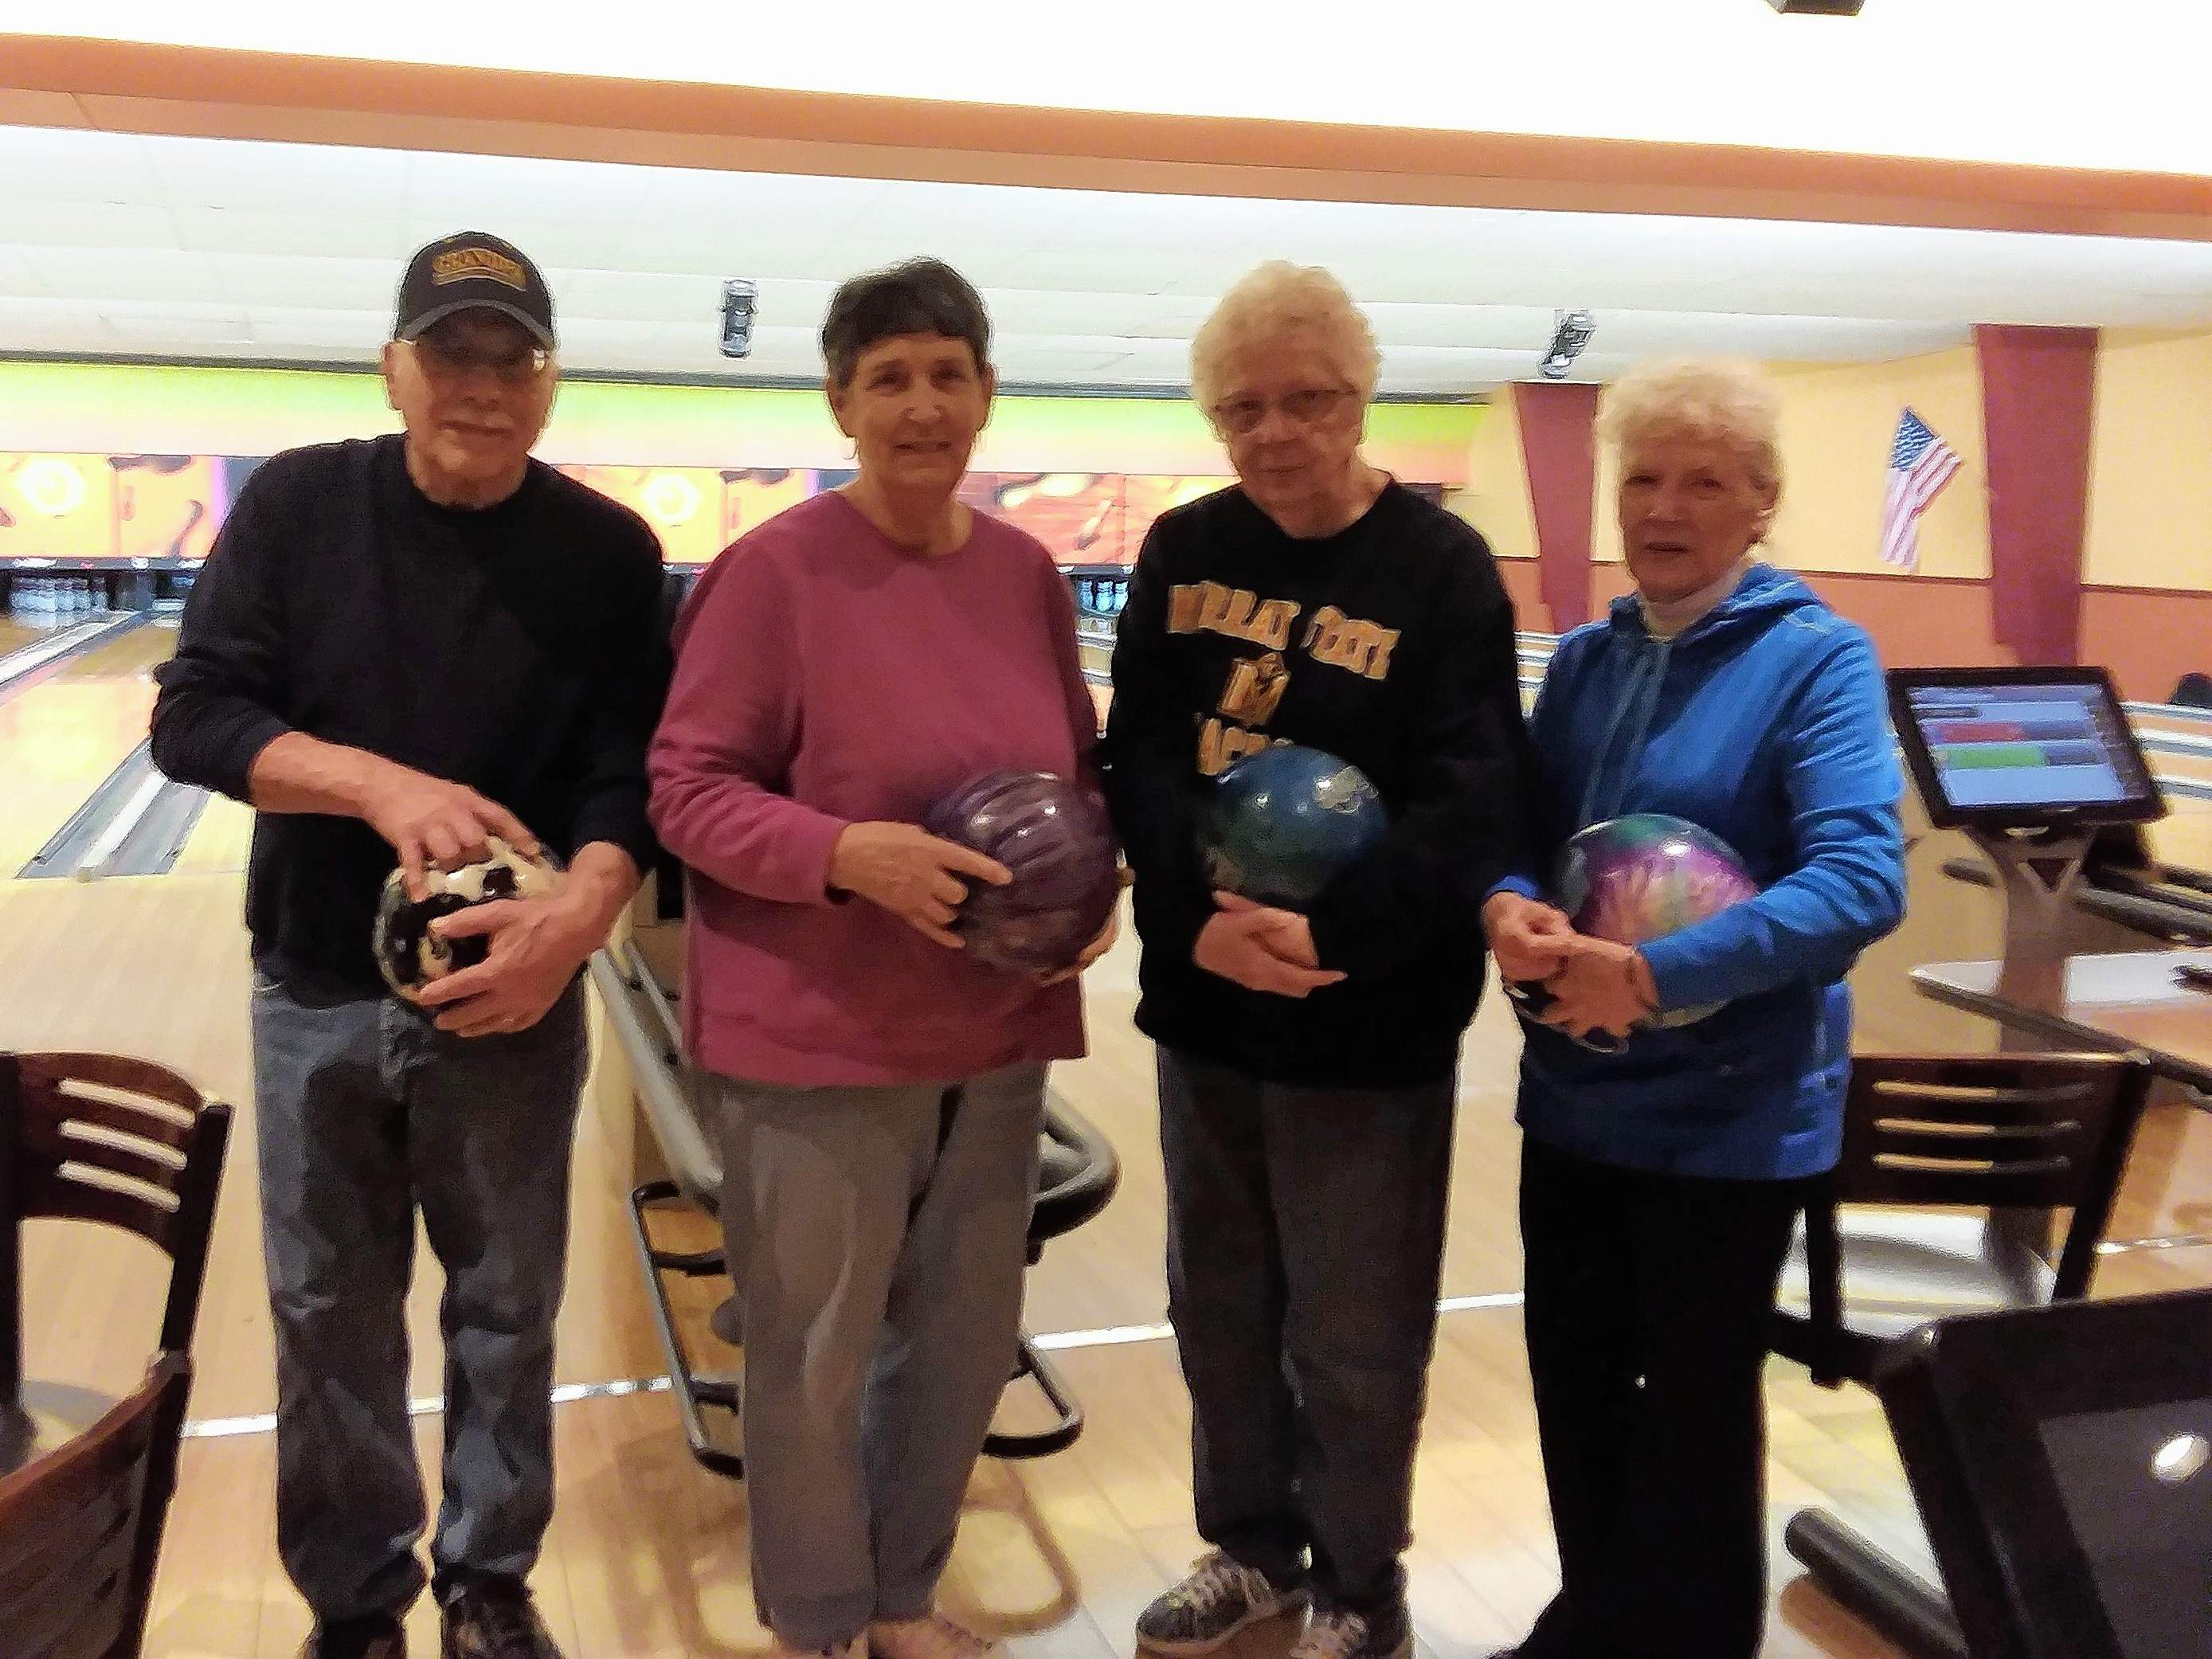 From left, Tom Veth, Mary Vinyard, Carolyn Veth and Carolyn Elam were the team with thei highest pin count.